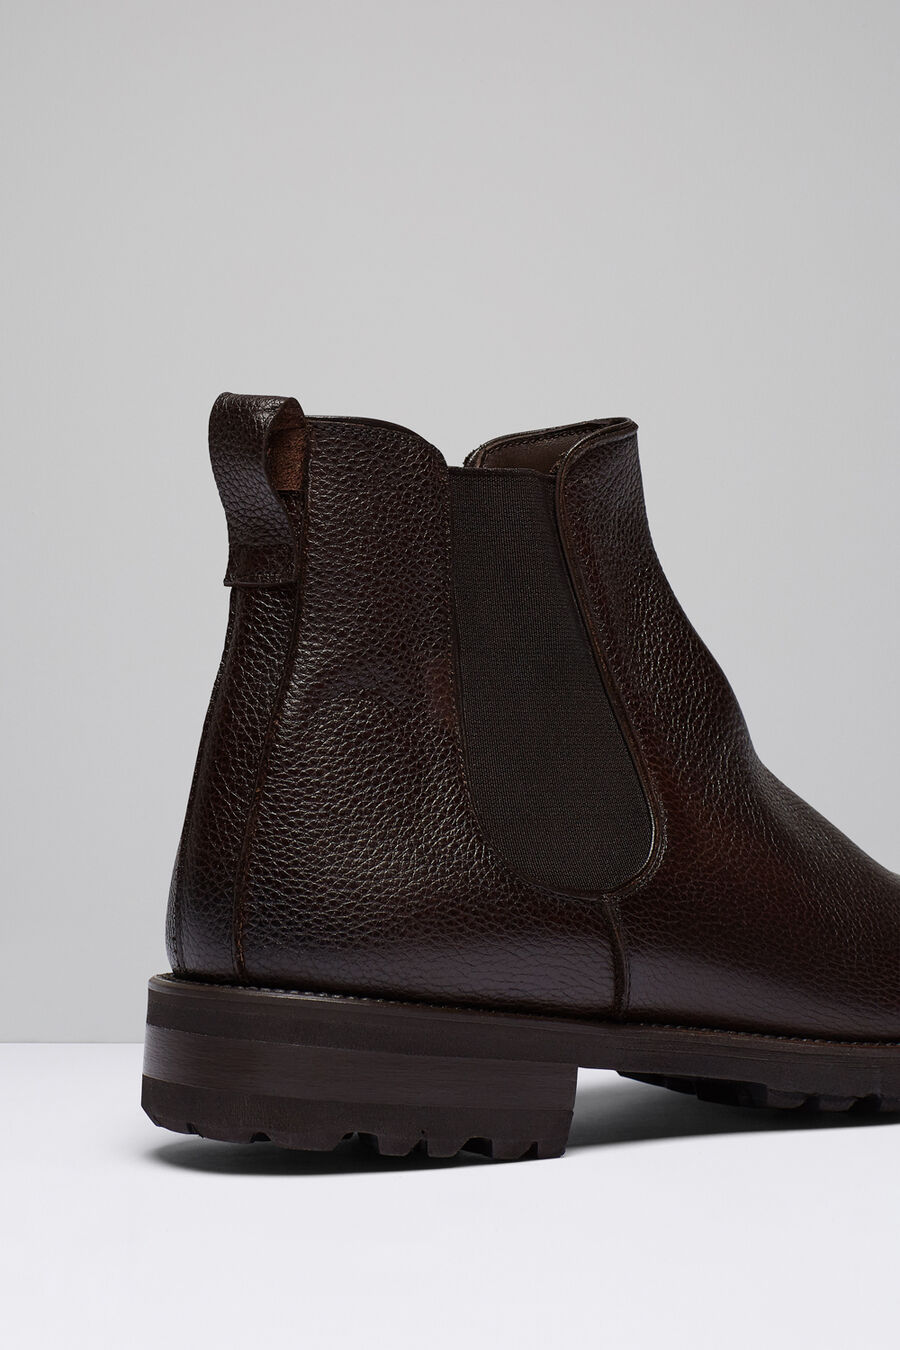 Chelsea boots with cleated soles